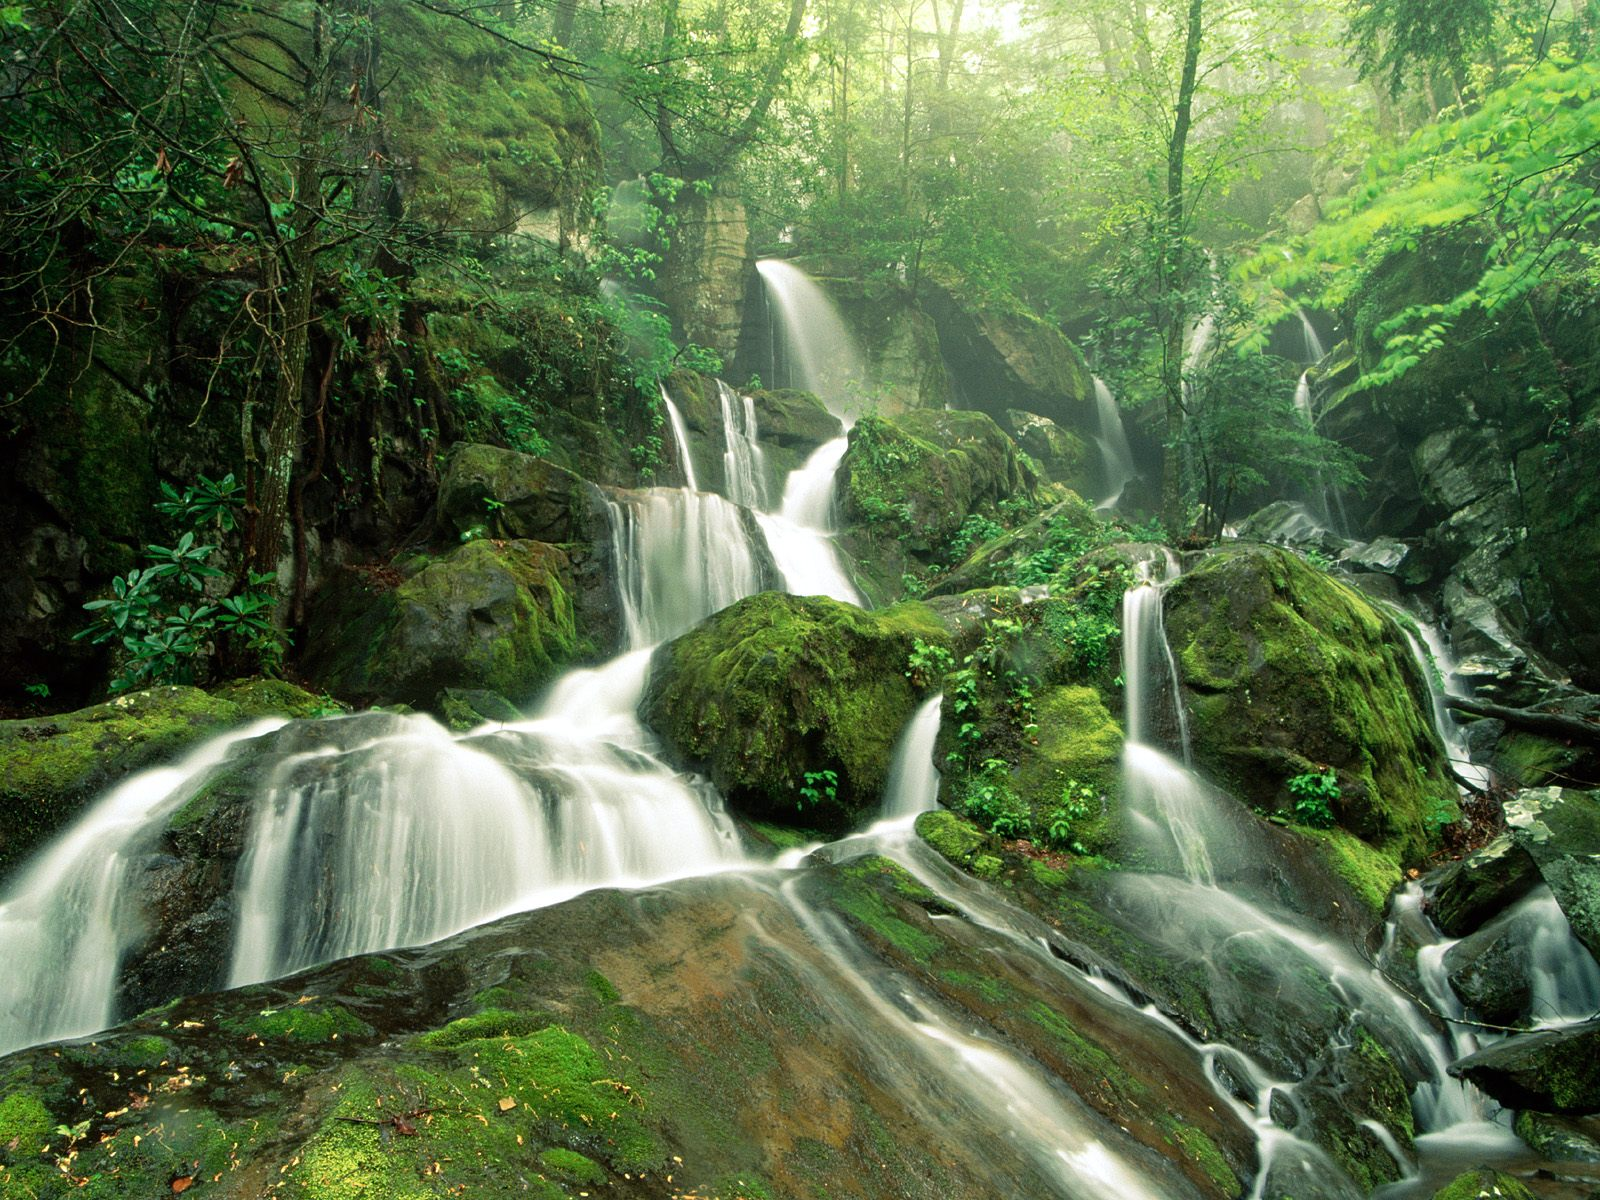 most beautiful nature pictures |Wallpaper Express is all ...